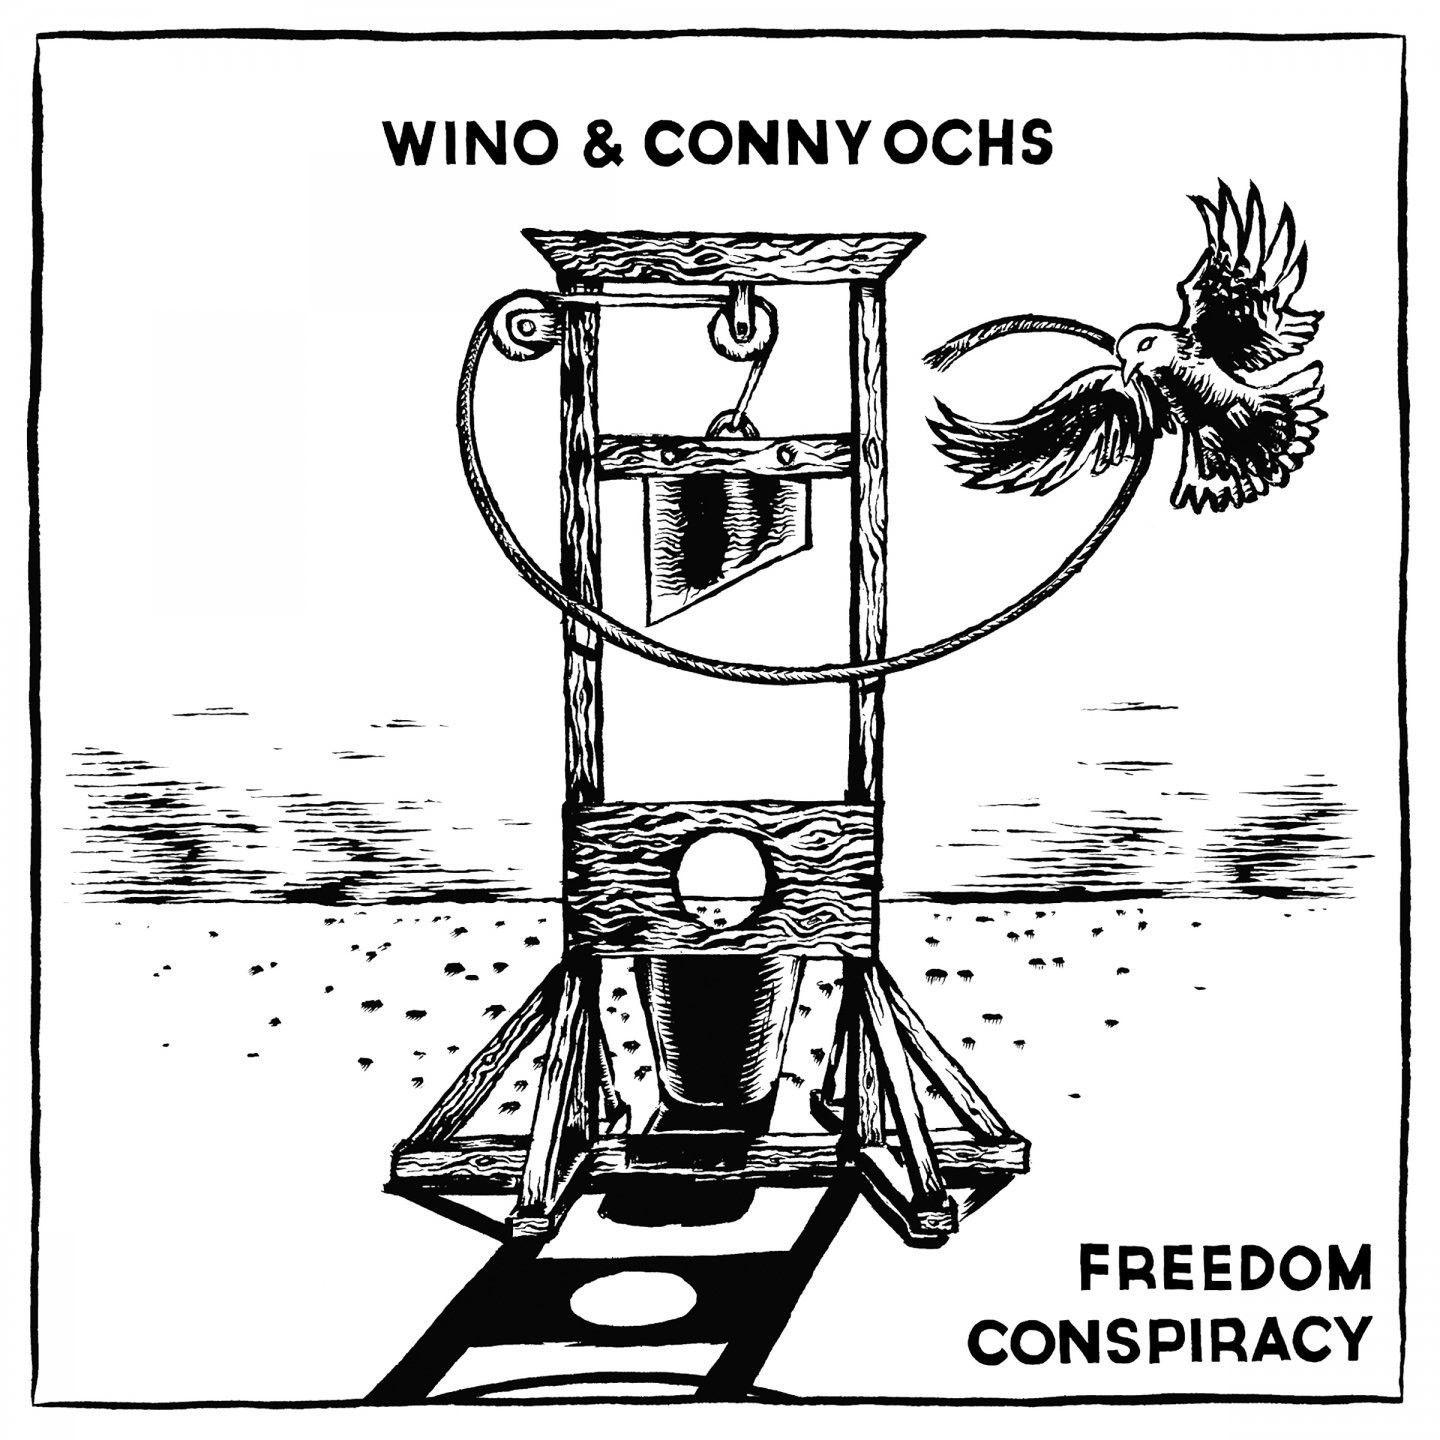 Wino & Conny Ochs -Freedom Conspiracy